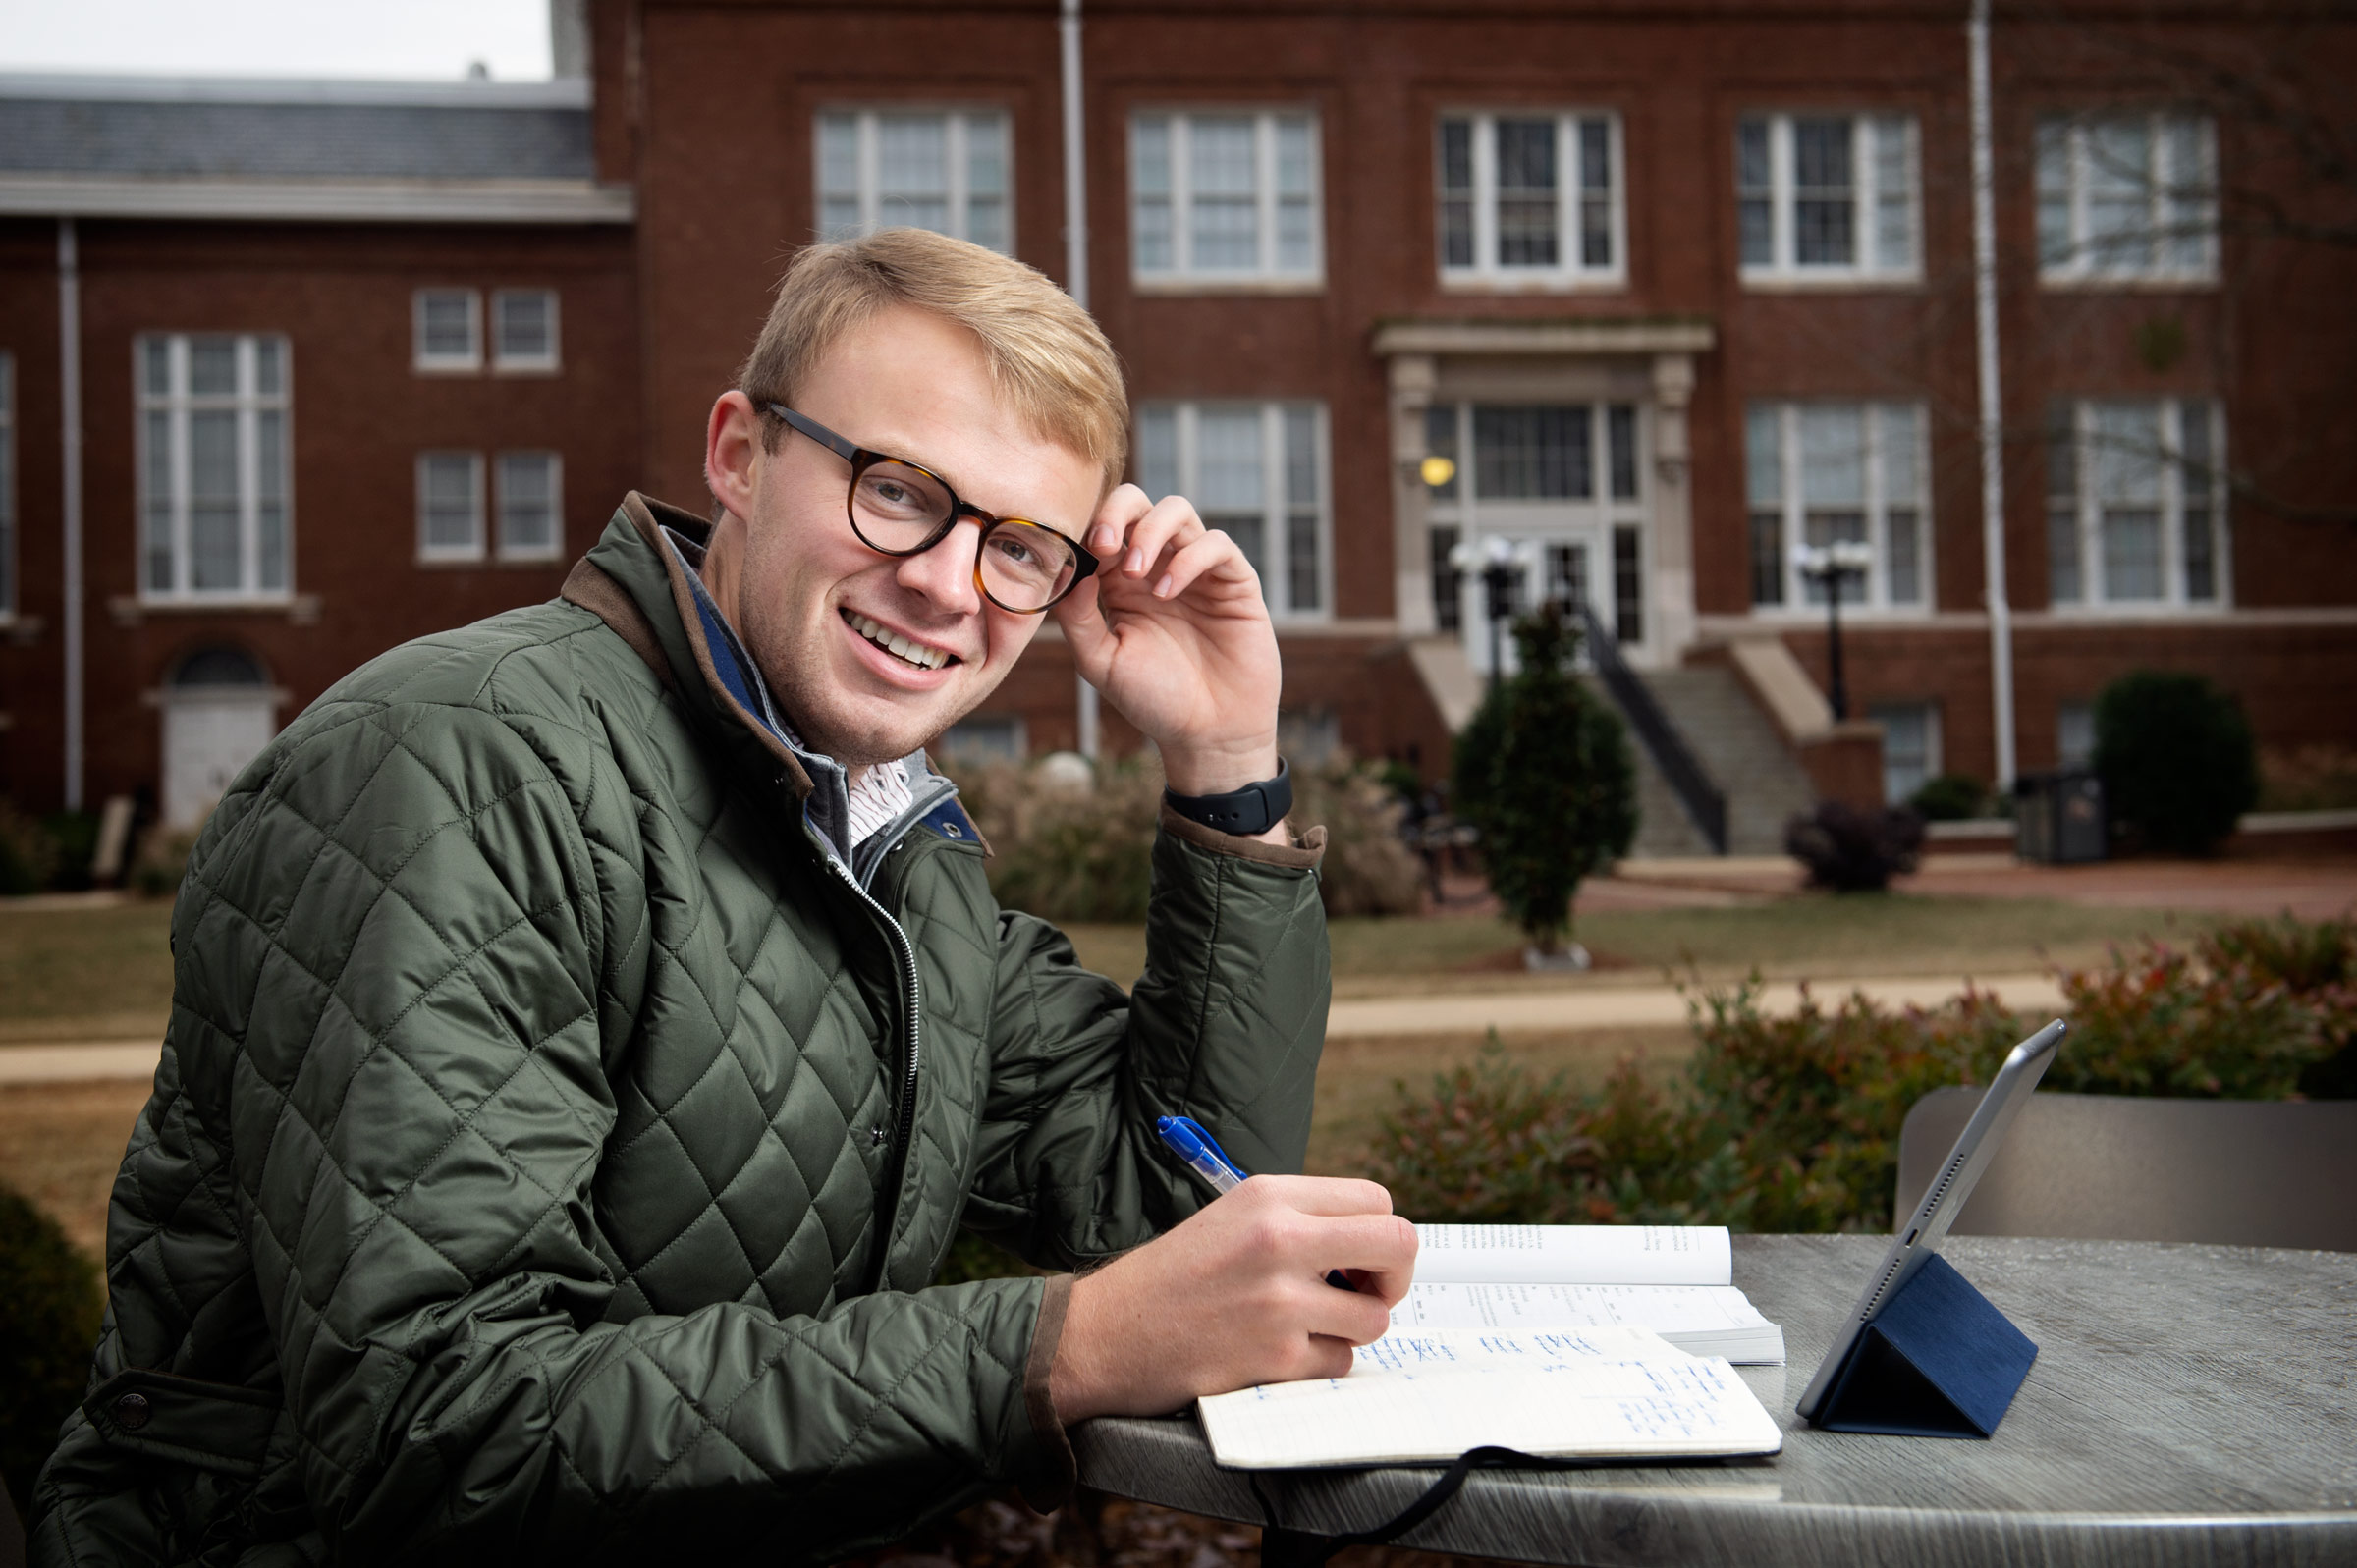 Reid Stevens, pictured at a table in front of Colvard Student Union with Lee Hall in the background